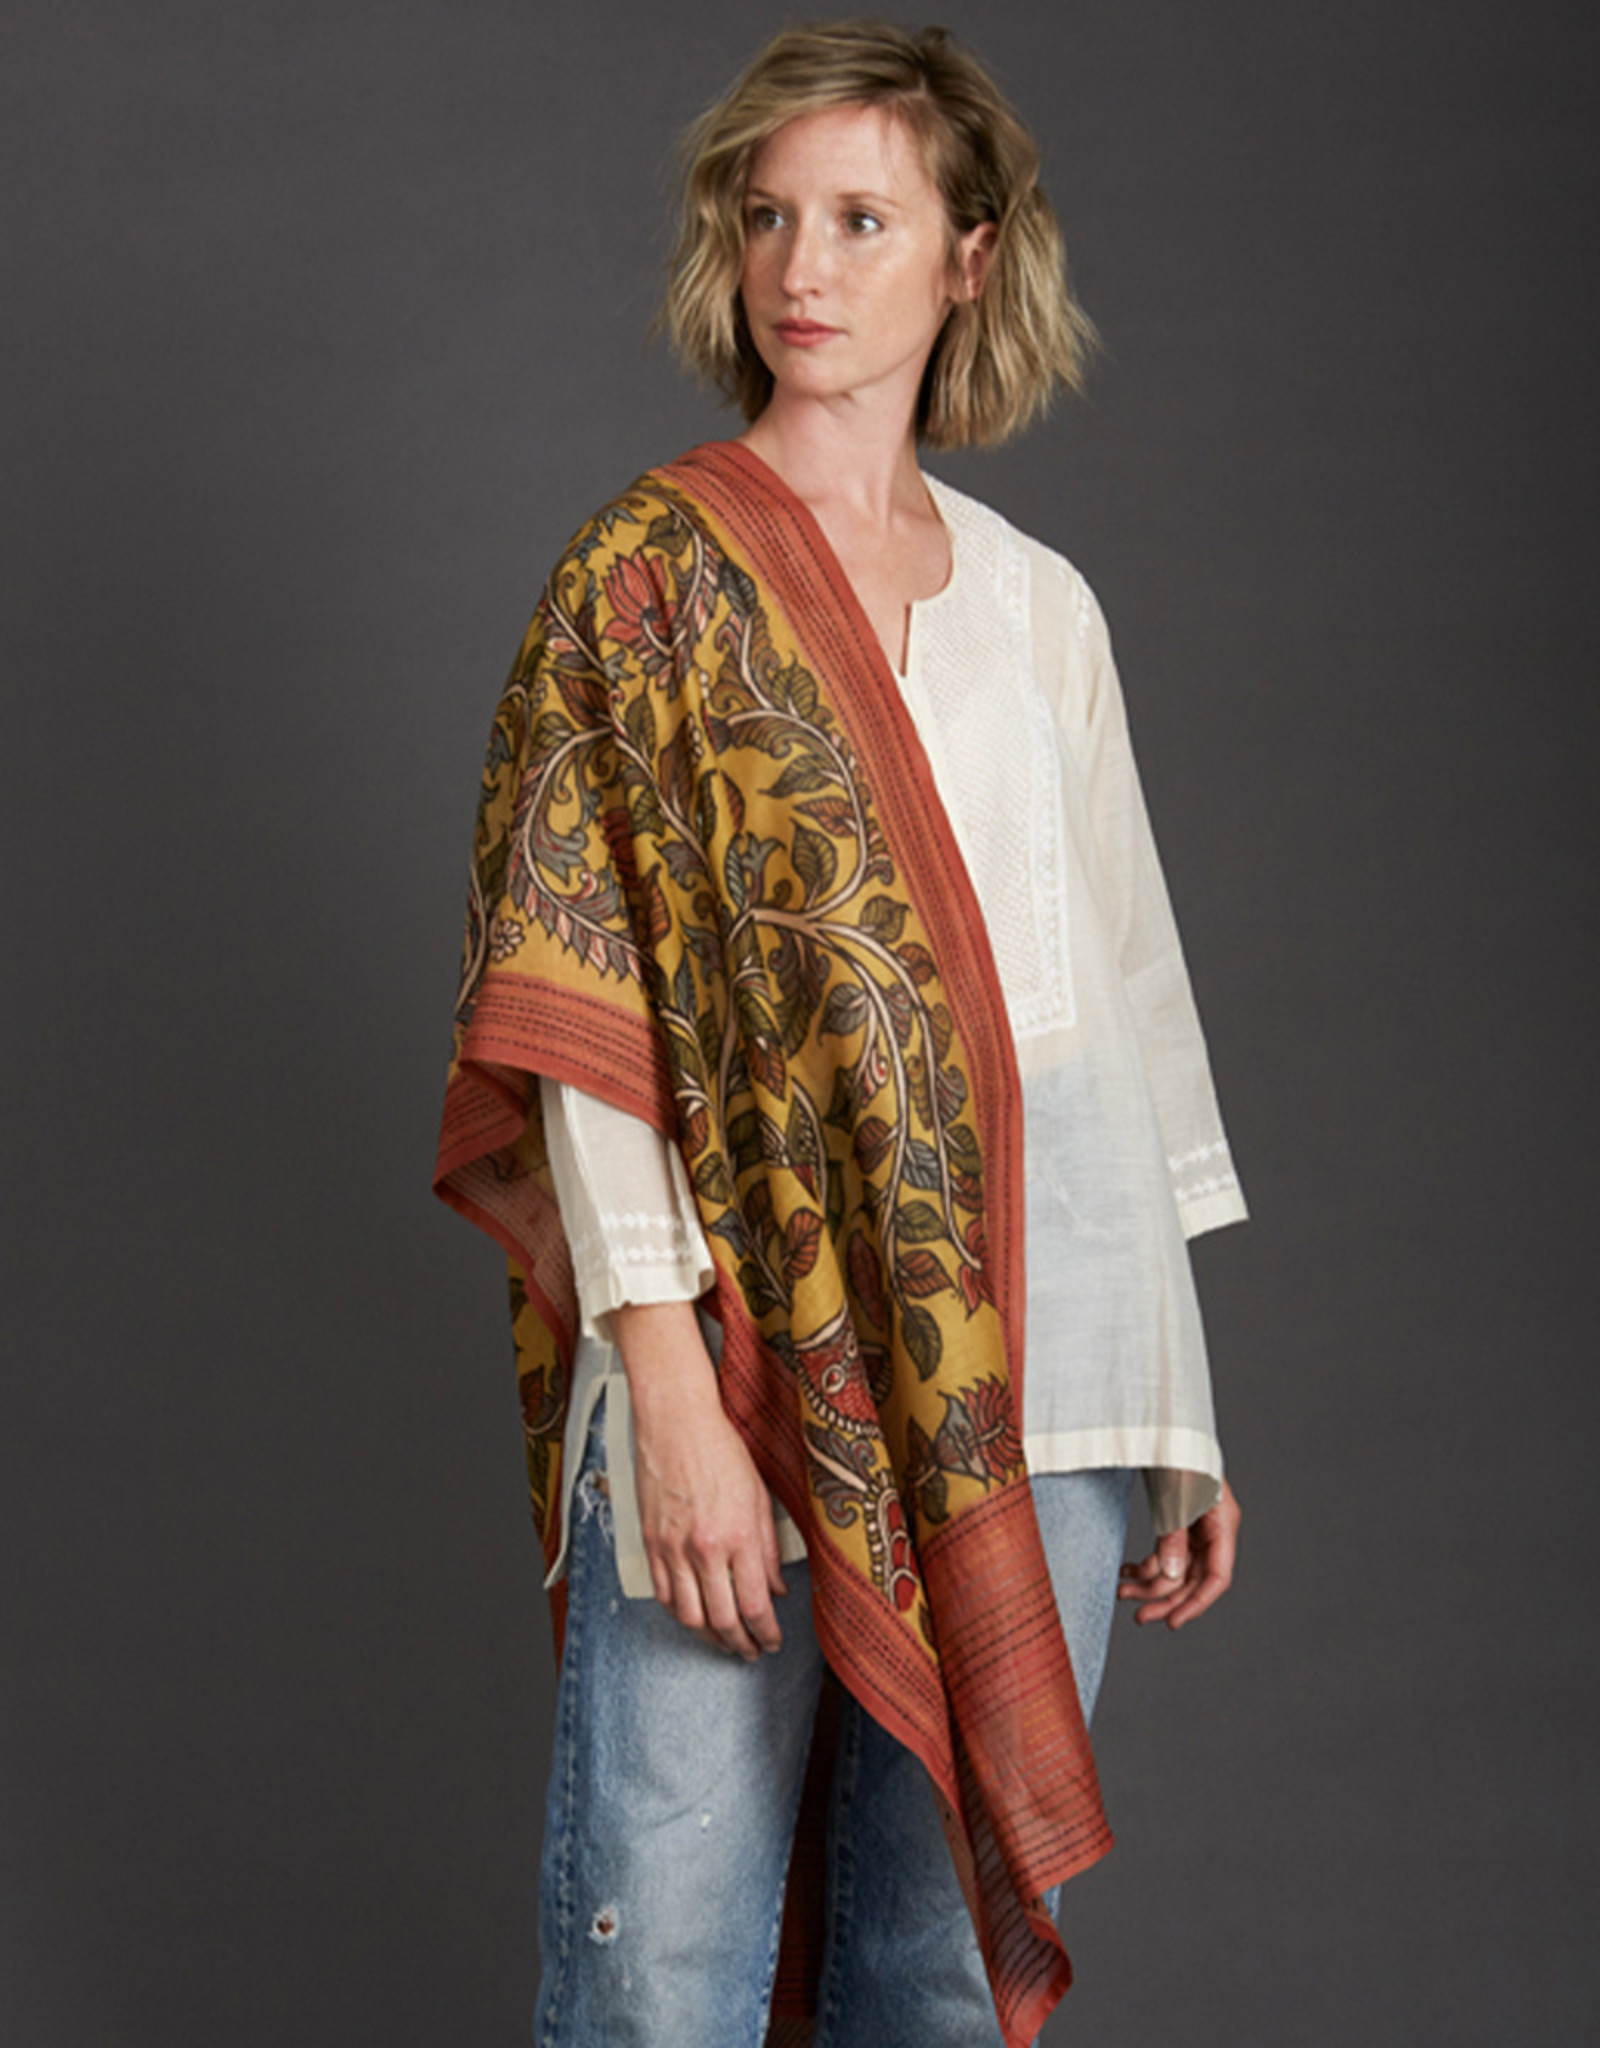 Dwaraka Hand Painted Cotton Scarf with Kantha Stitch Border Marigold